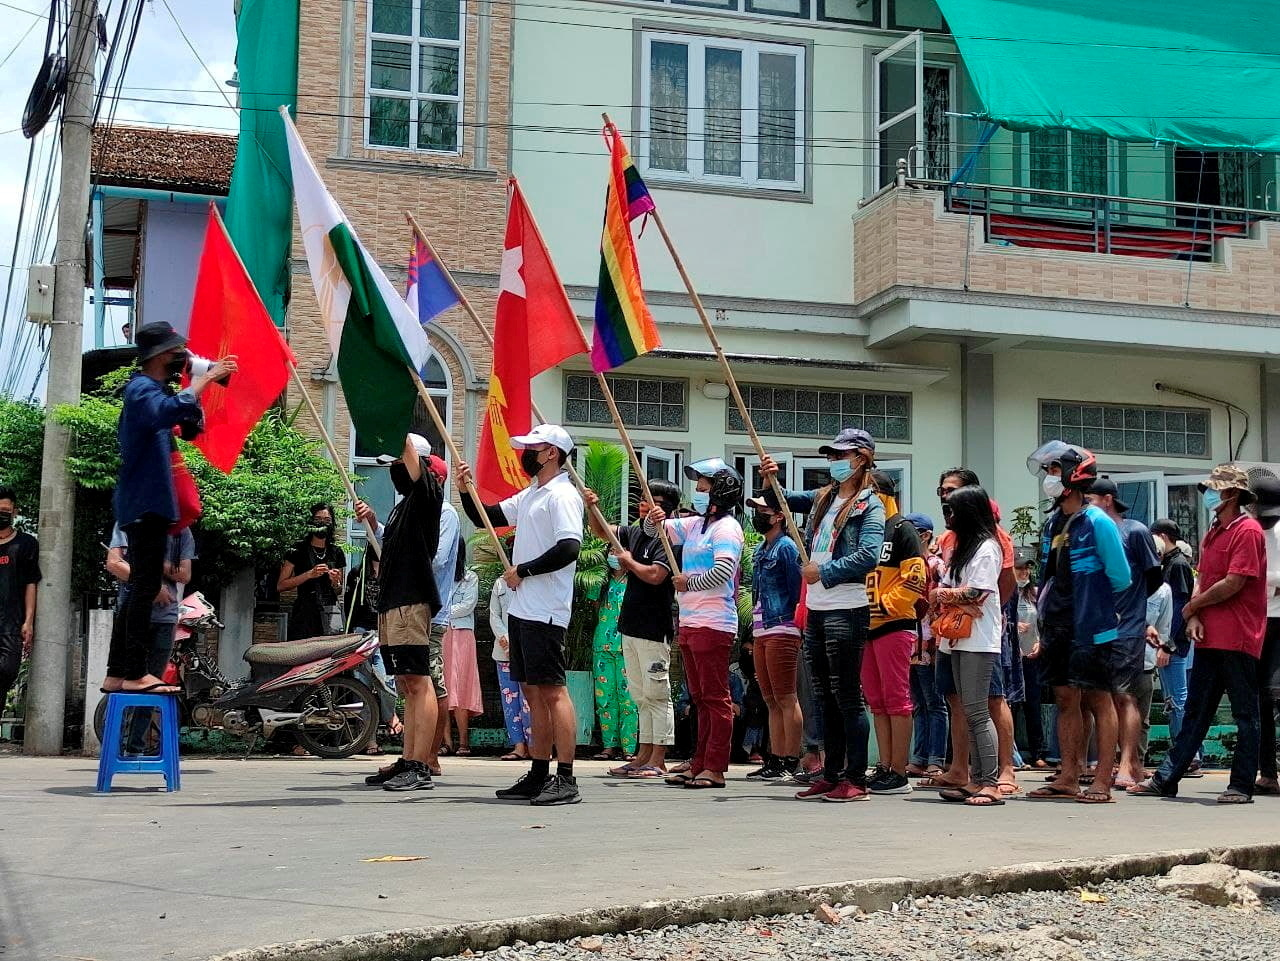 Demonstrators carry flags during a protest against the military coup, in Dawei, Myanmar, April 27, 2021. Courtesy of Dawei Watch/via REUTERS/File Photo